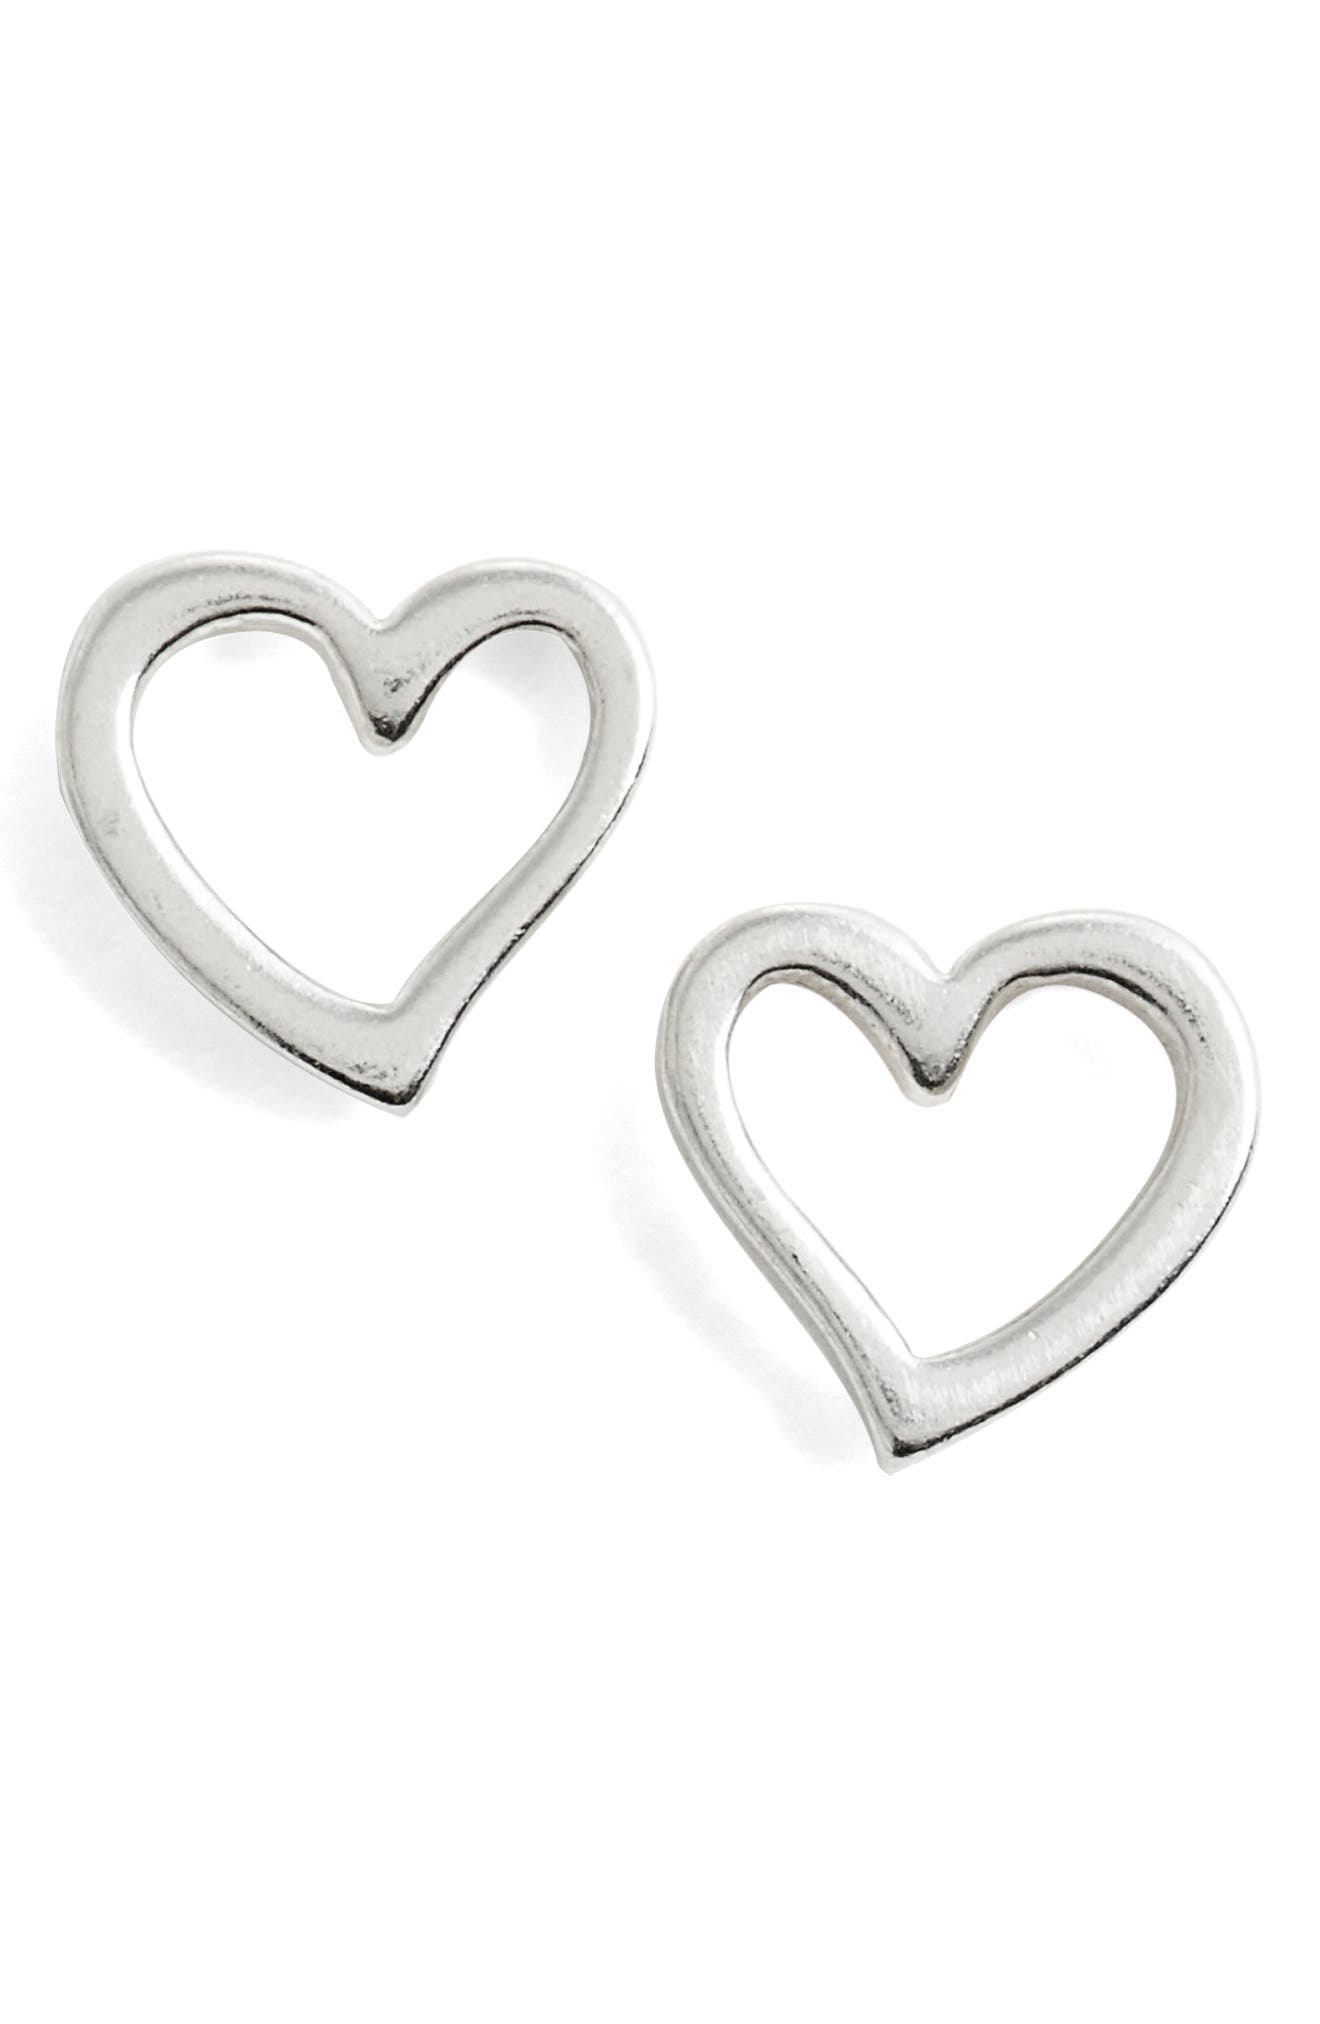 Heart Earrings,                             Main thumbnail 1, color,                             040